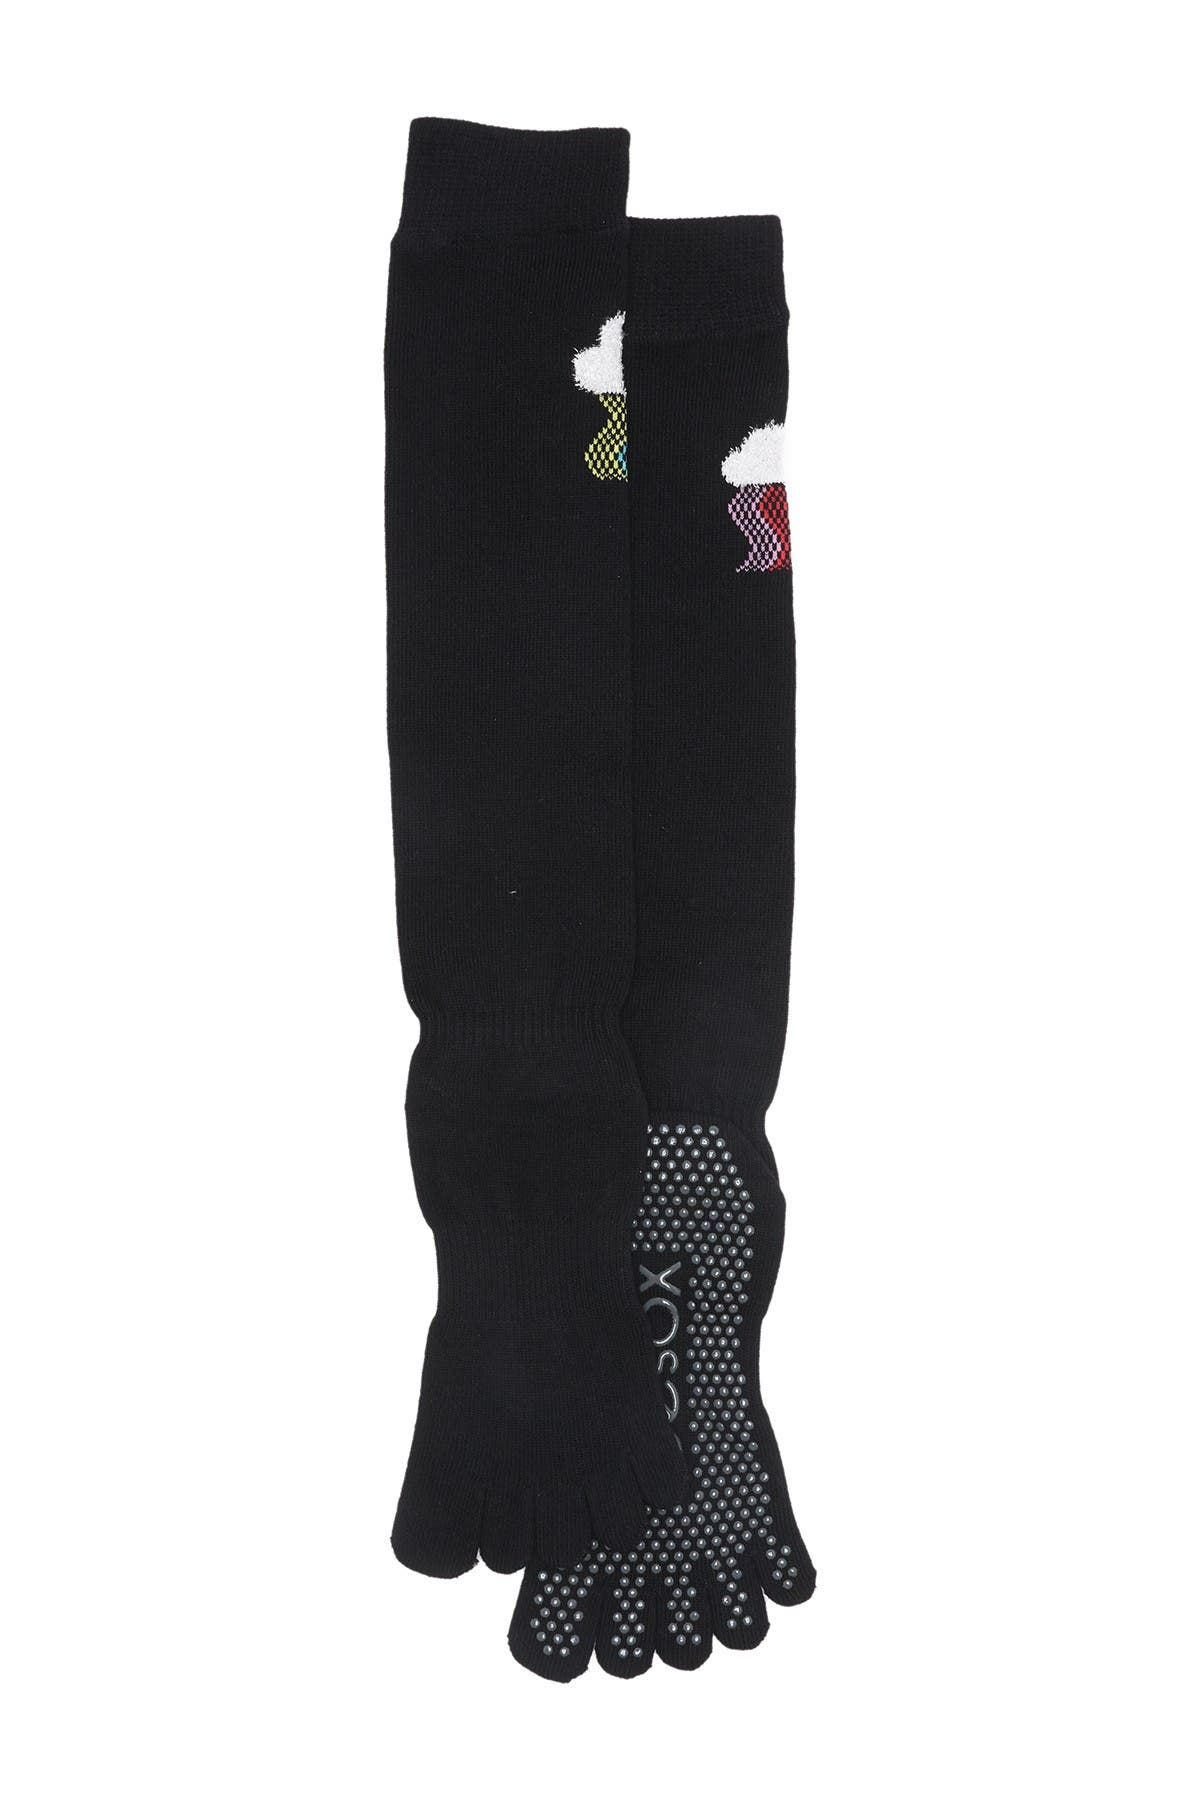 Image of ToeSox Full Toe Scrunch Knee High Grip Socks